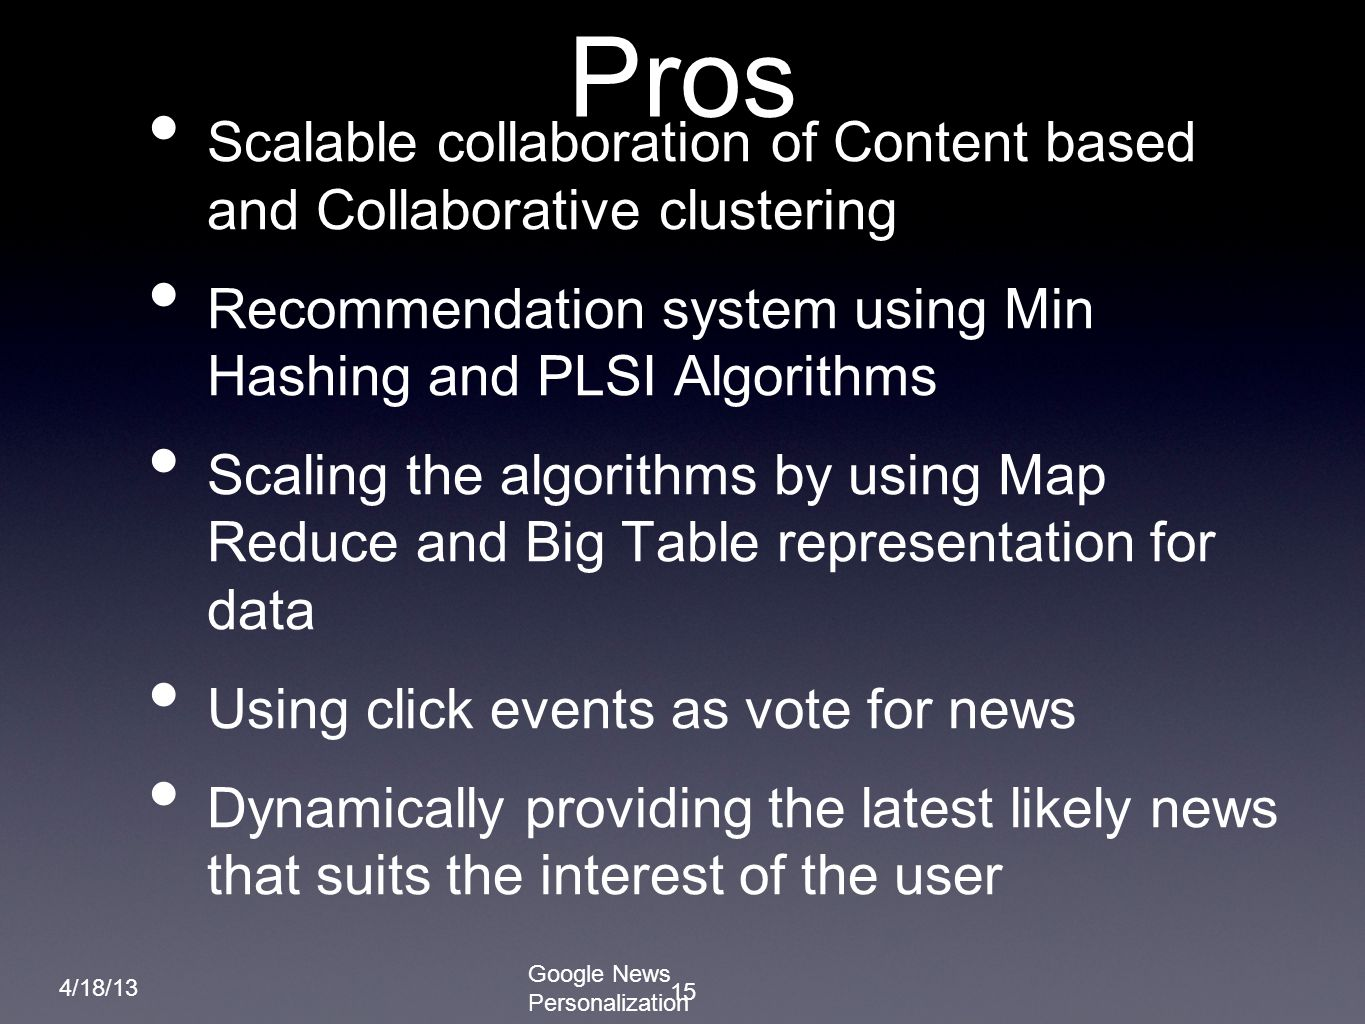 Pros Scalable collaboration of Content based and Collaborative clustering. Recommendation system using Min Hashing and PLSI Algorithms.